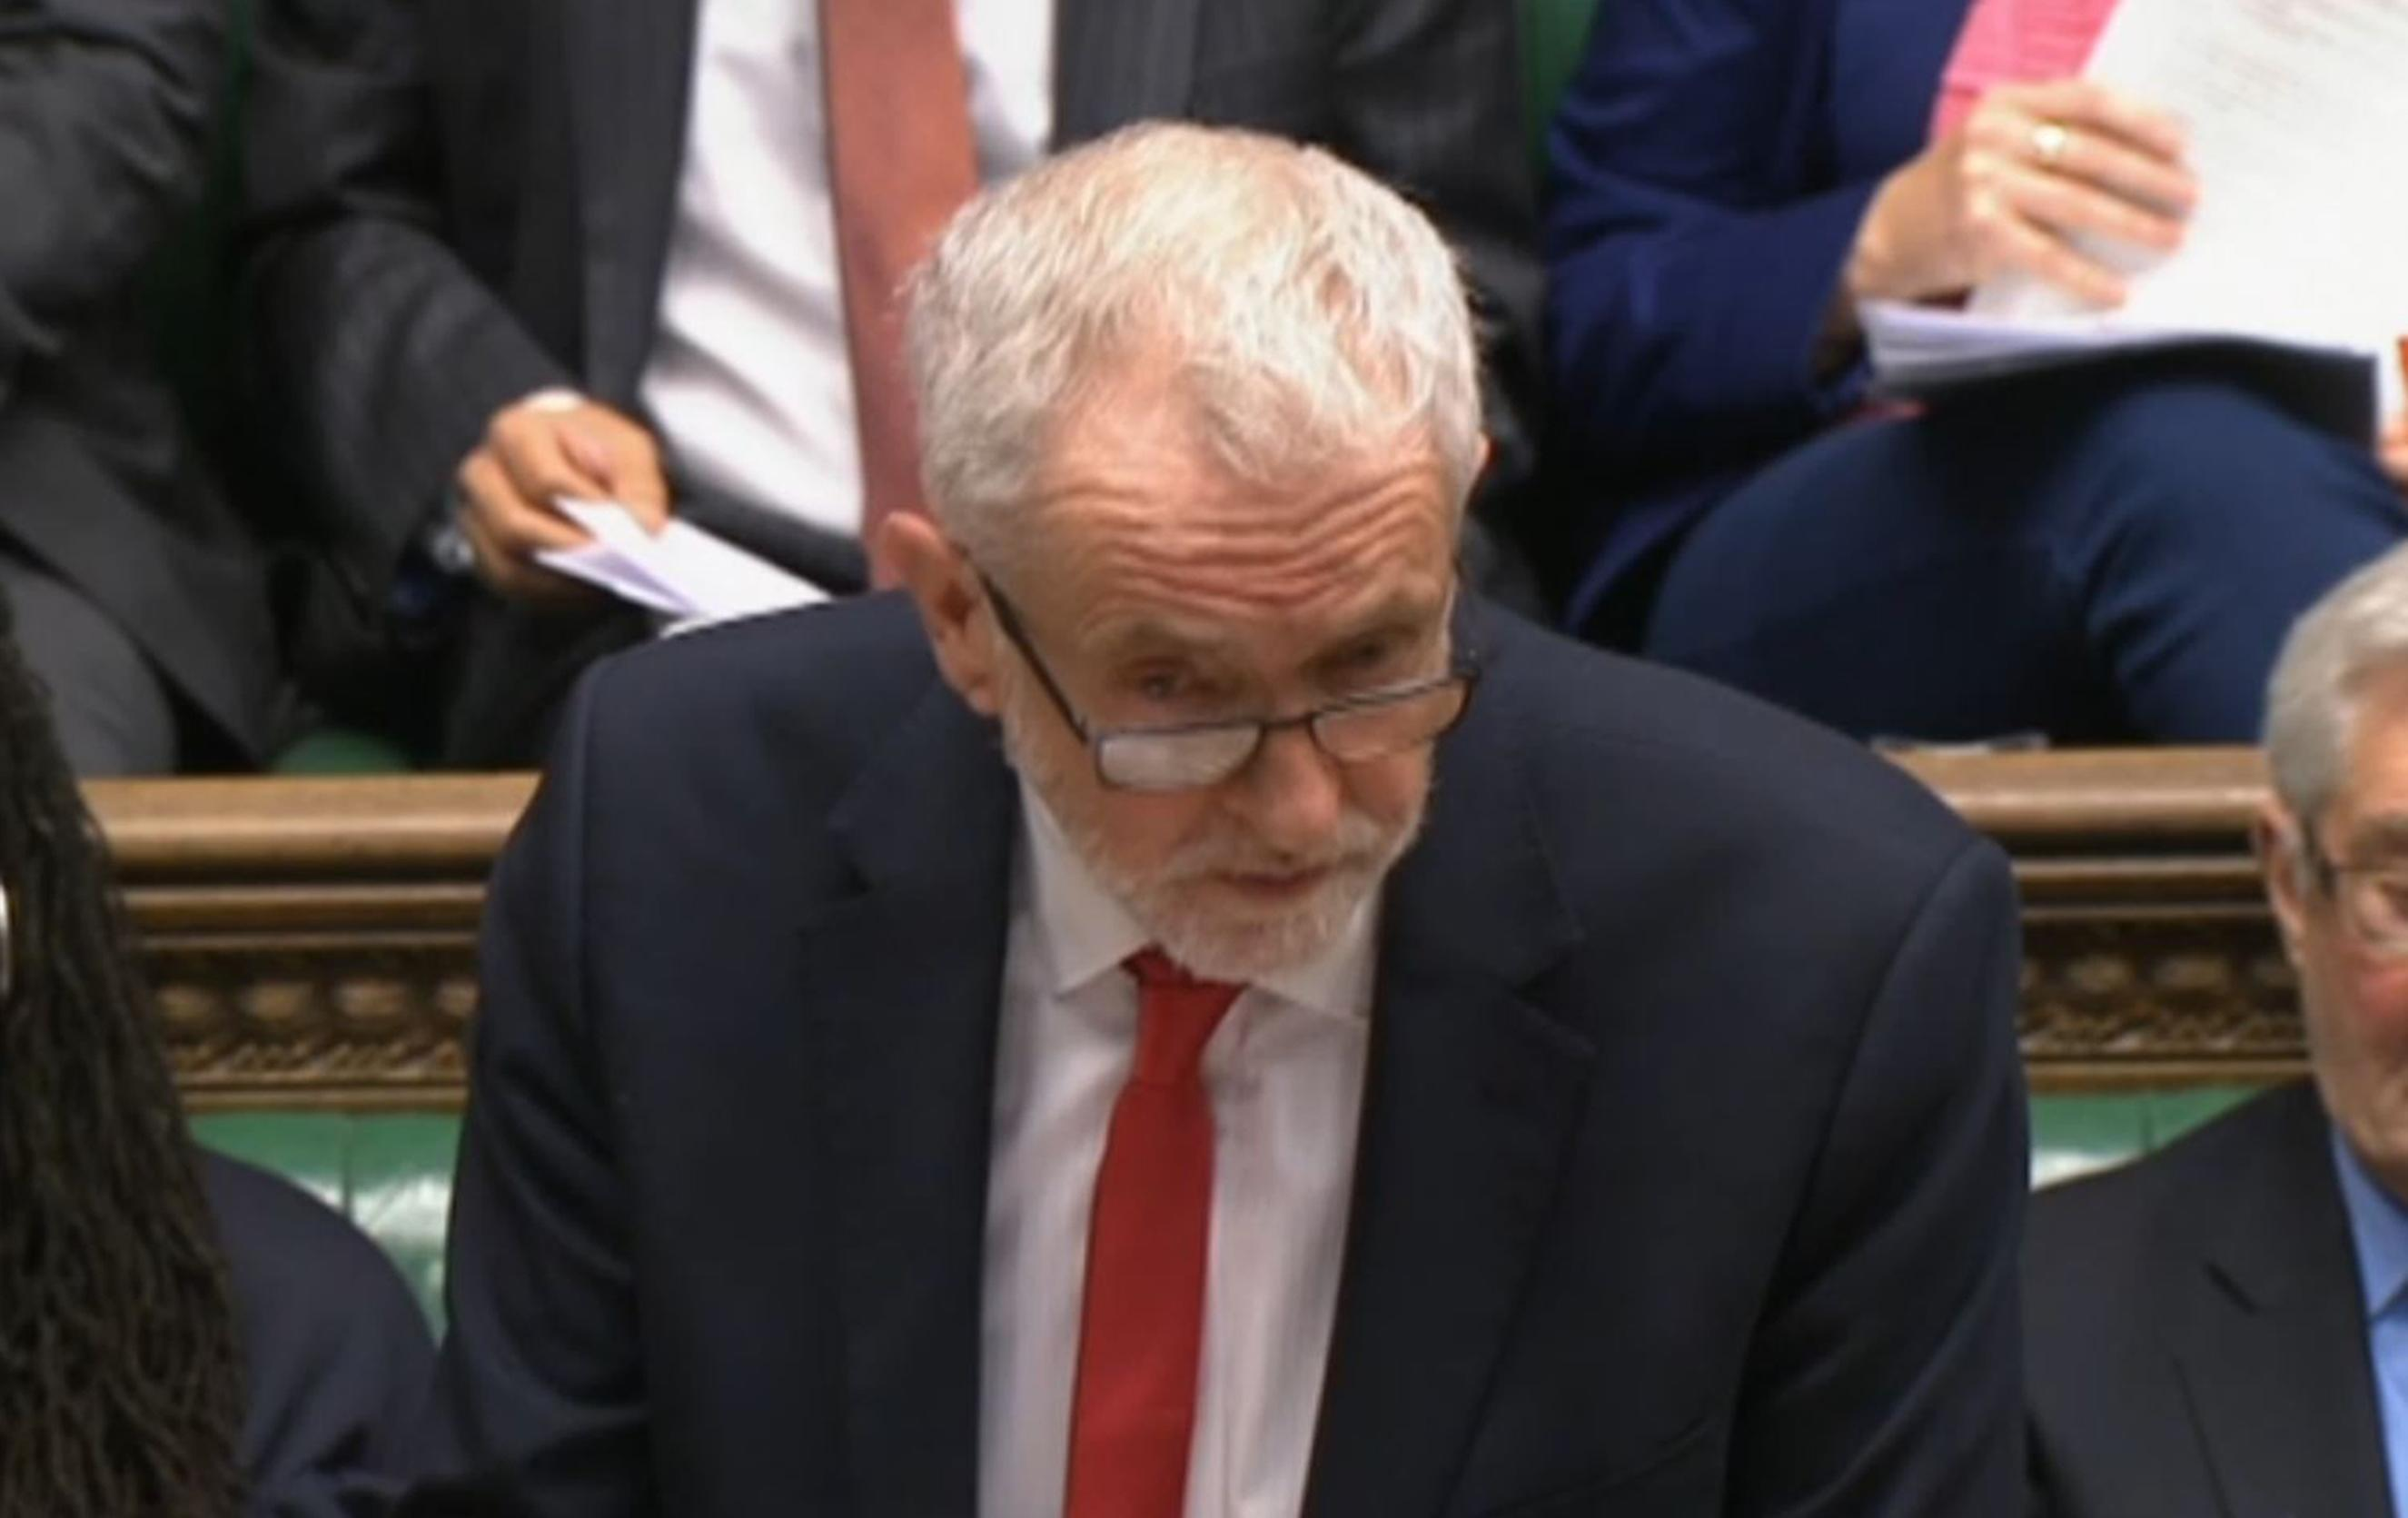 Labour leader Jeremy Corbyn speaks during Prime Minister's Questions in the House of Commons, London. (Photo by House of Commons/PA Images via Getty Images)